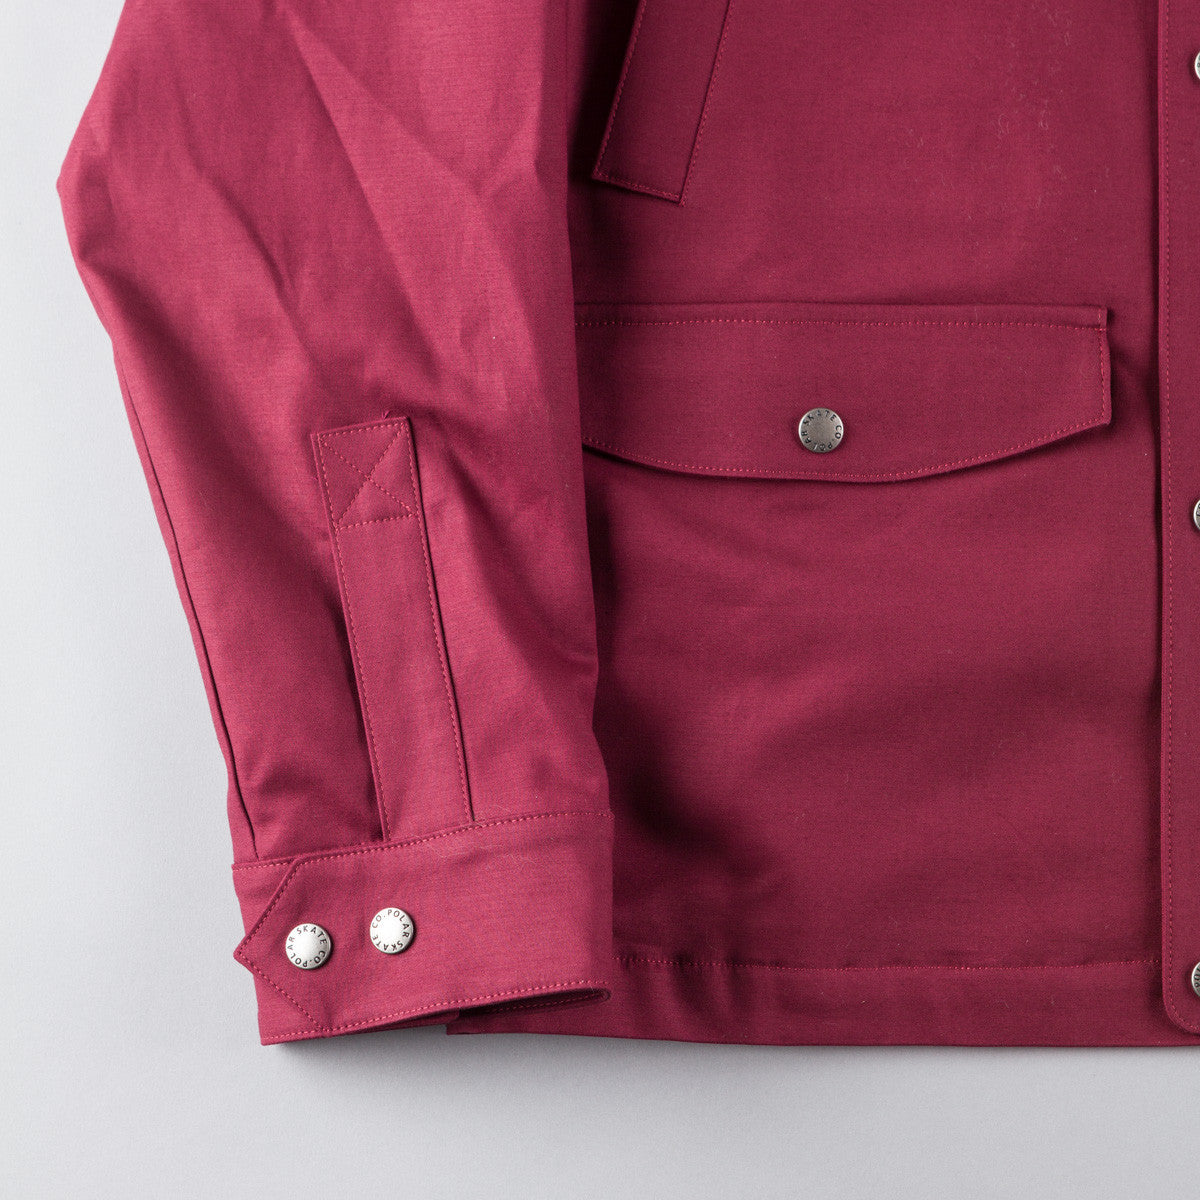 Polar Nautical Jacket - Burgundy